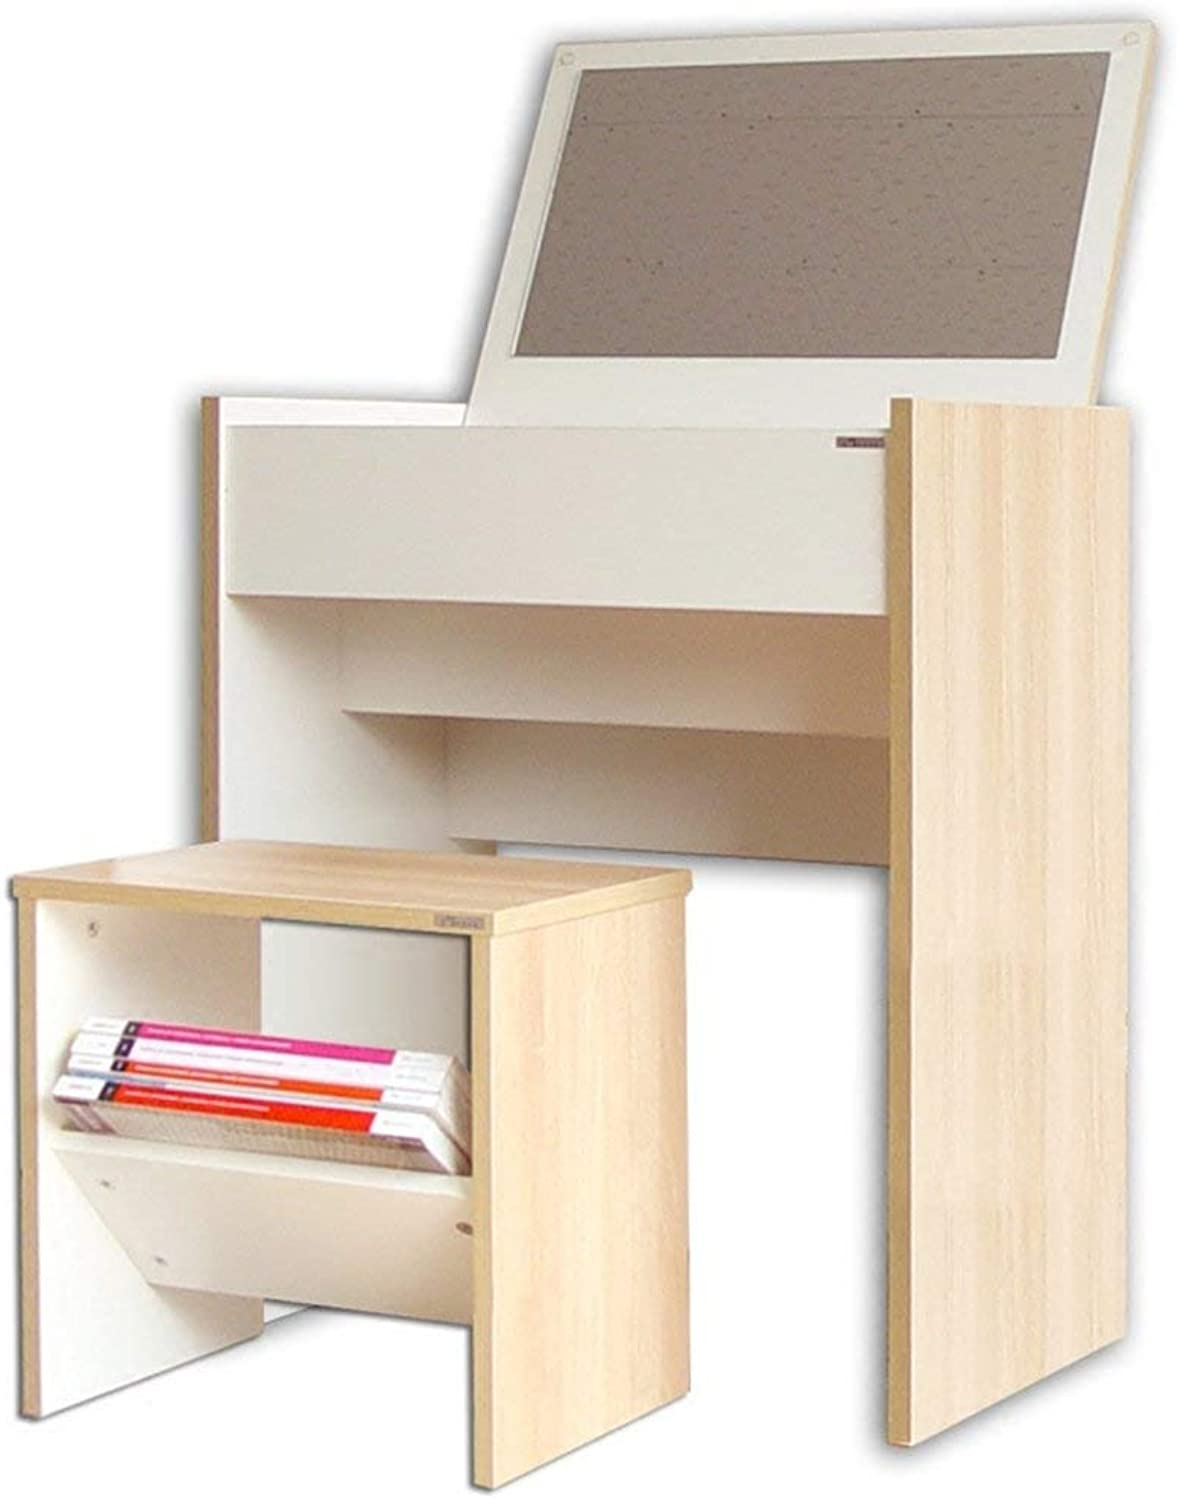 GUI Lazy Table Wooden Dressing Table and Padded Stool with Flip up Mirror